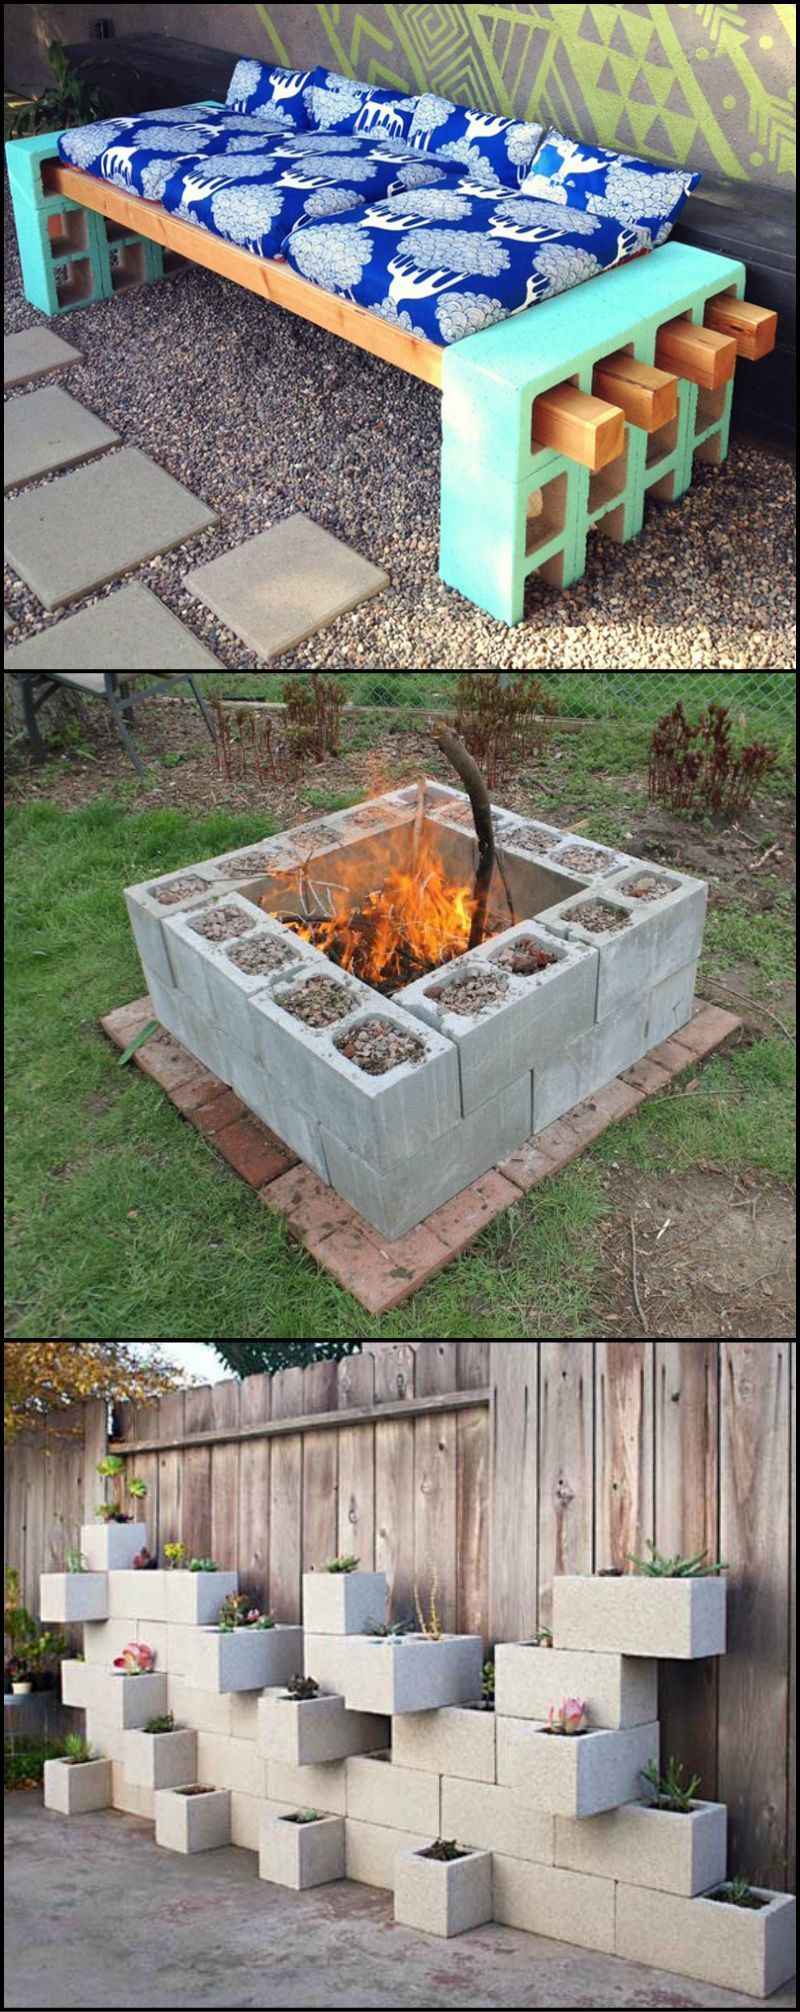 15 Outstanding Cinder Block Fire Pit Design Ideas For ... on Outdoor Fireplace With Cinder Blocks id=36668